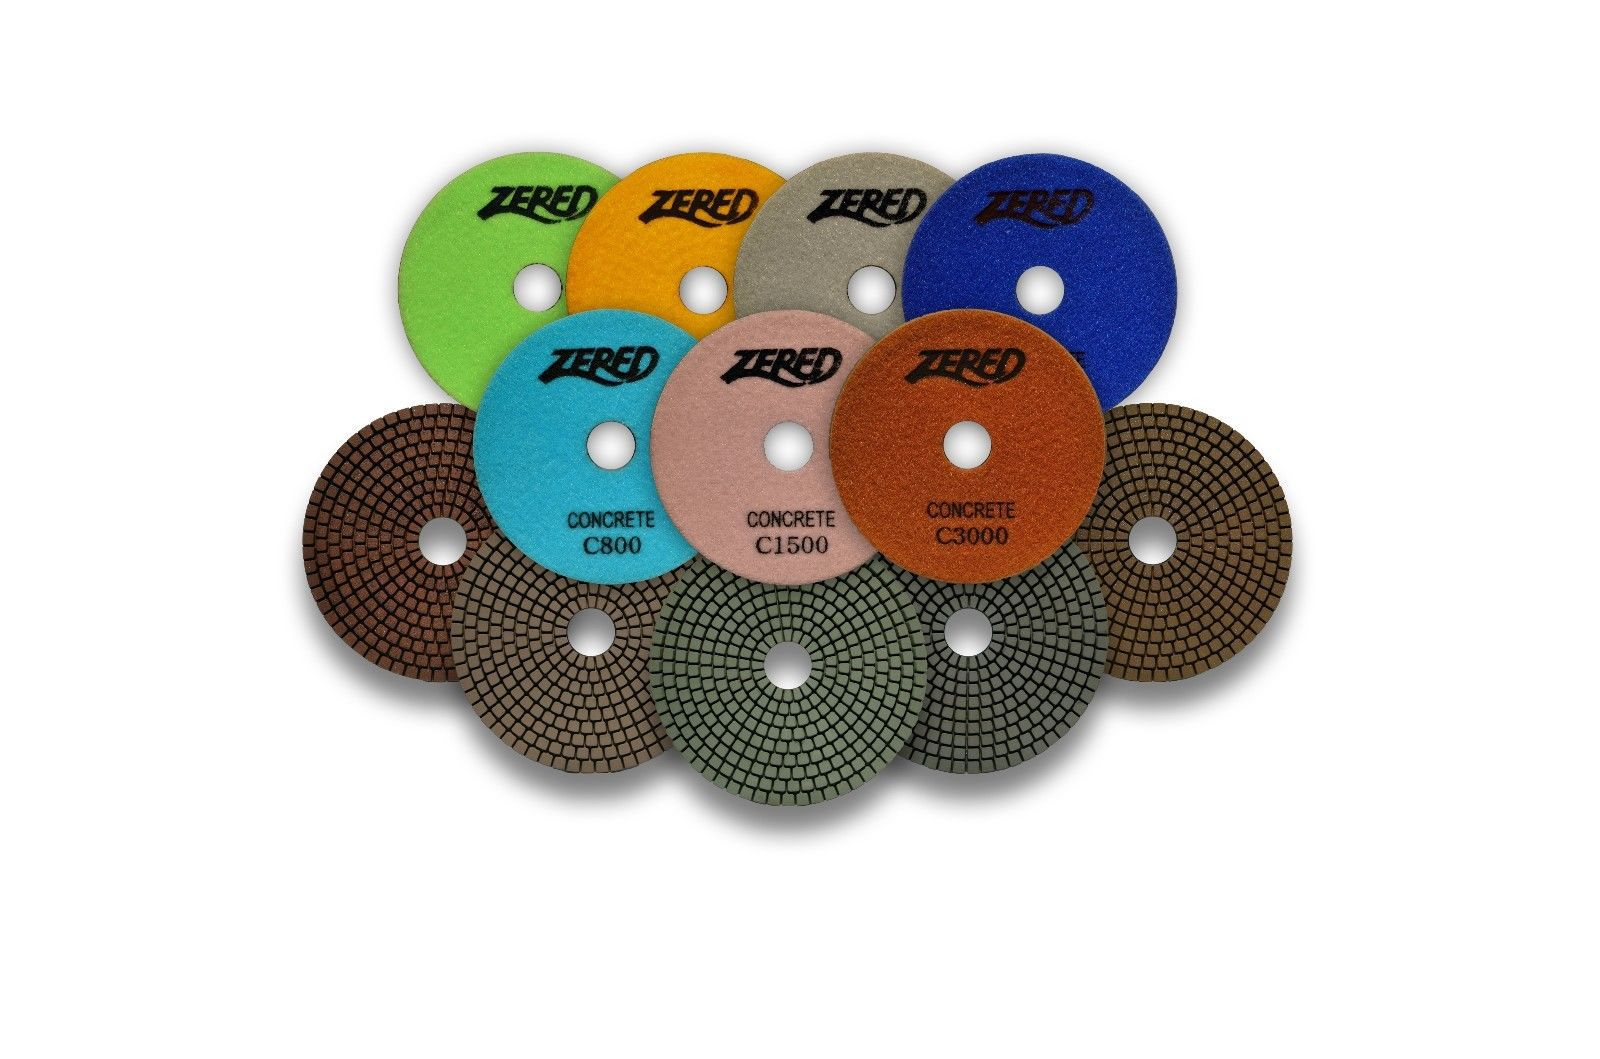 Primary image for ZERED Premium Resin Diamond Polishing Pads for Concrete Floor